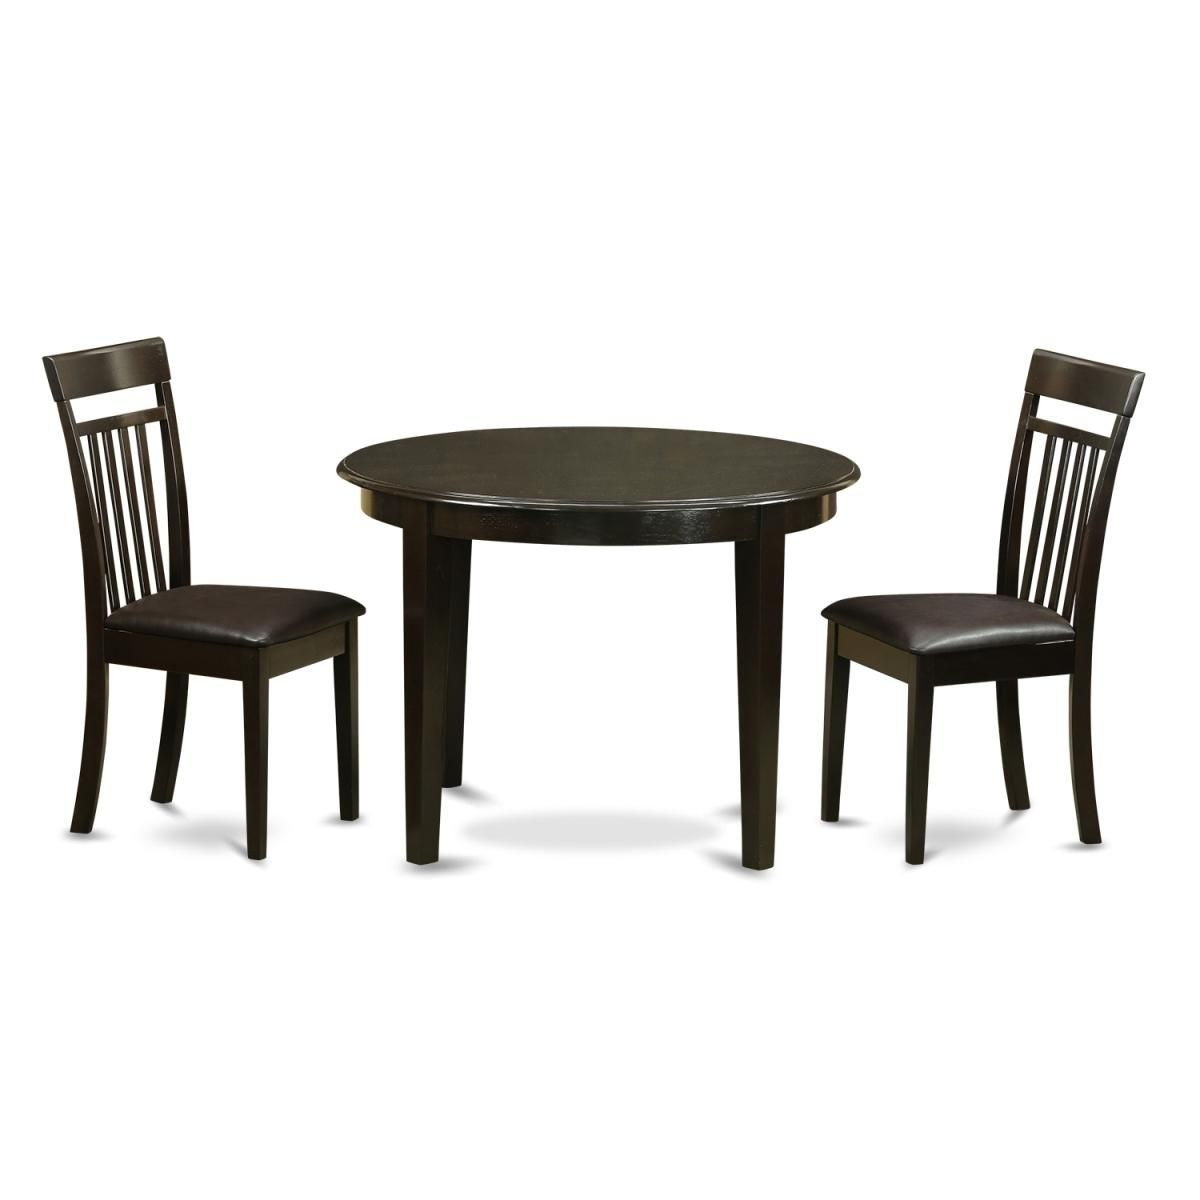 Small Kitchen Table & 2 Dinette Chairs, Cappuccino